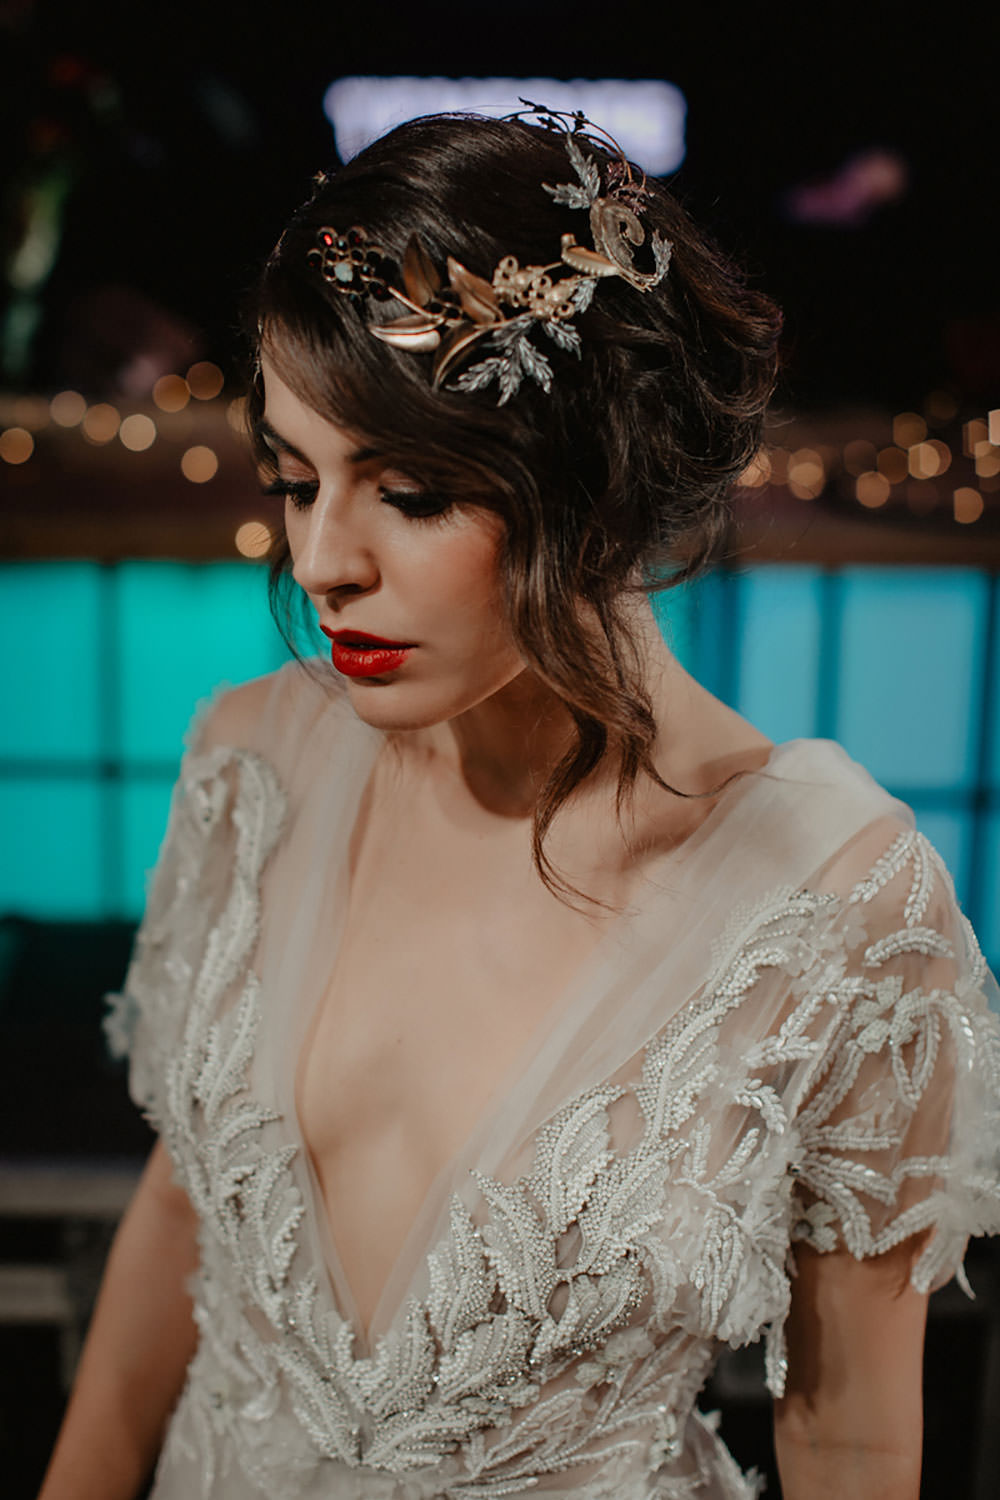 Headpiece Colorful Destination Elopement Hard Rock Hotel Stage Bridal Headpiece Plunge Dress | Tropical Industrial Canary Islands Wedding Ideas Moana Photography